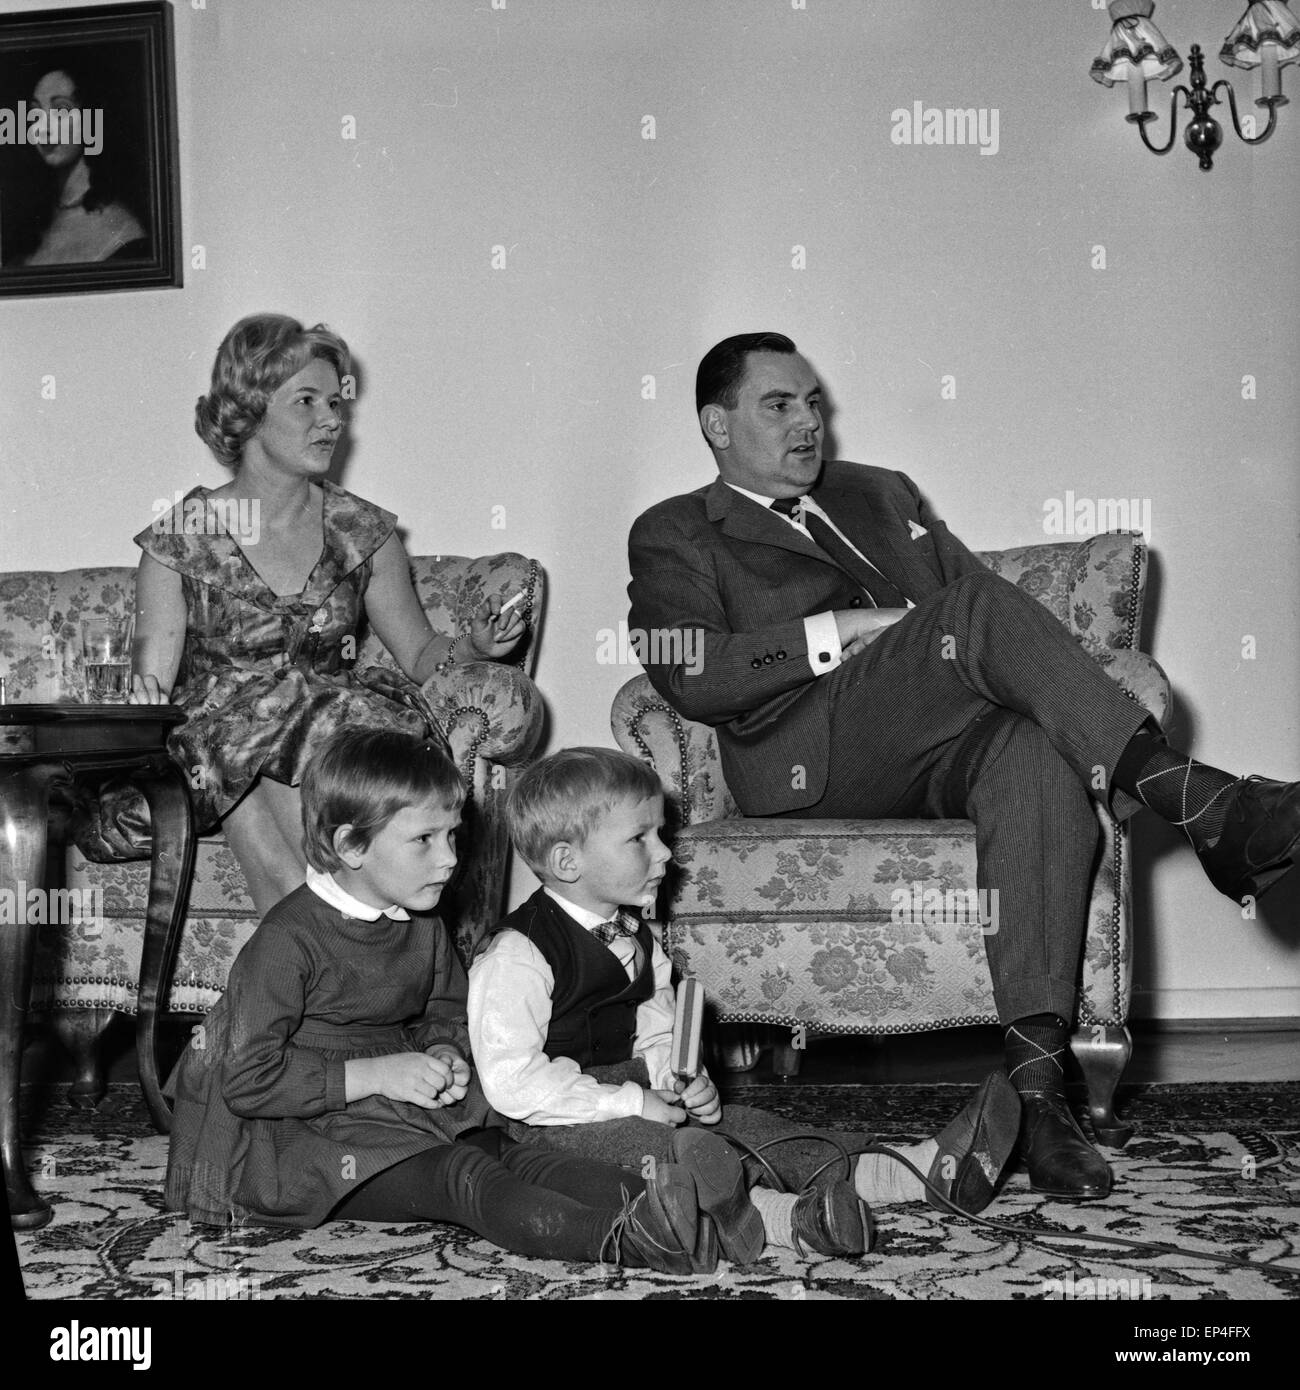 Family watching tv black and white stock photos images for Wohnzimmer 1960